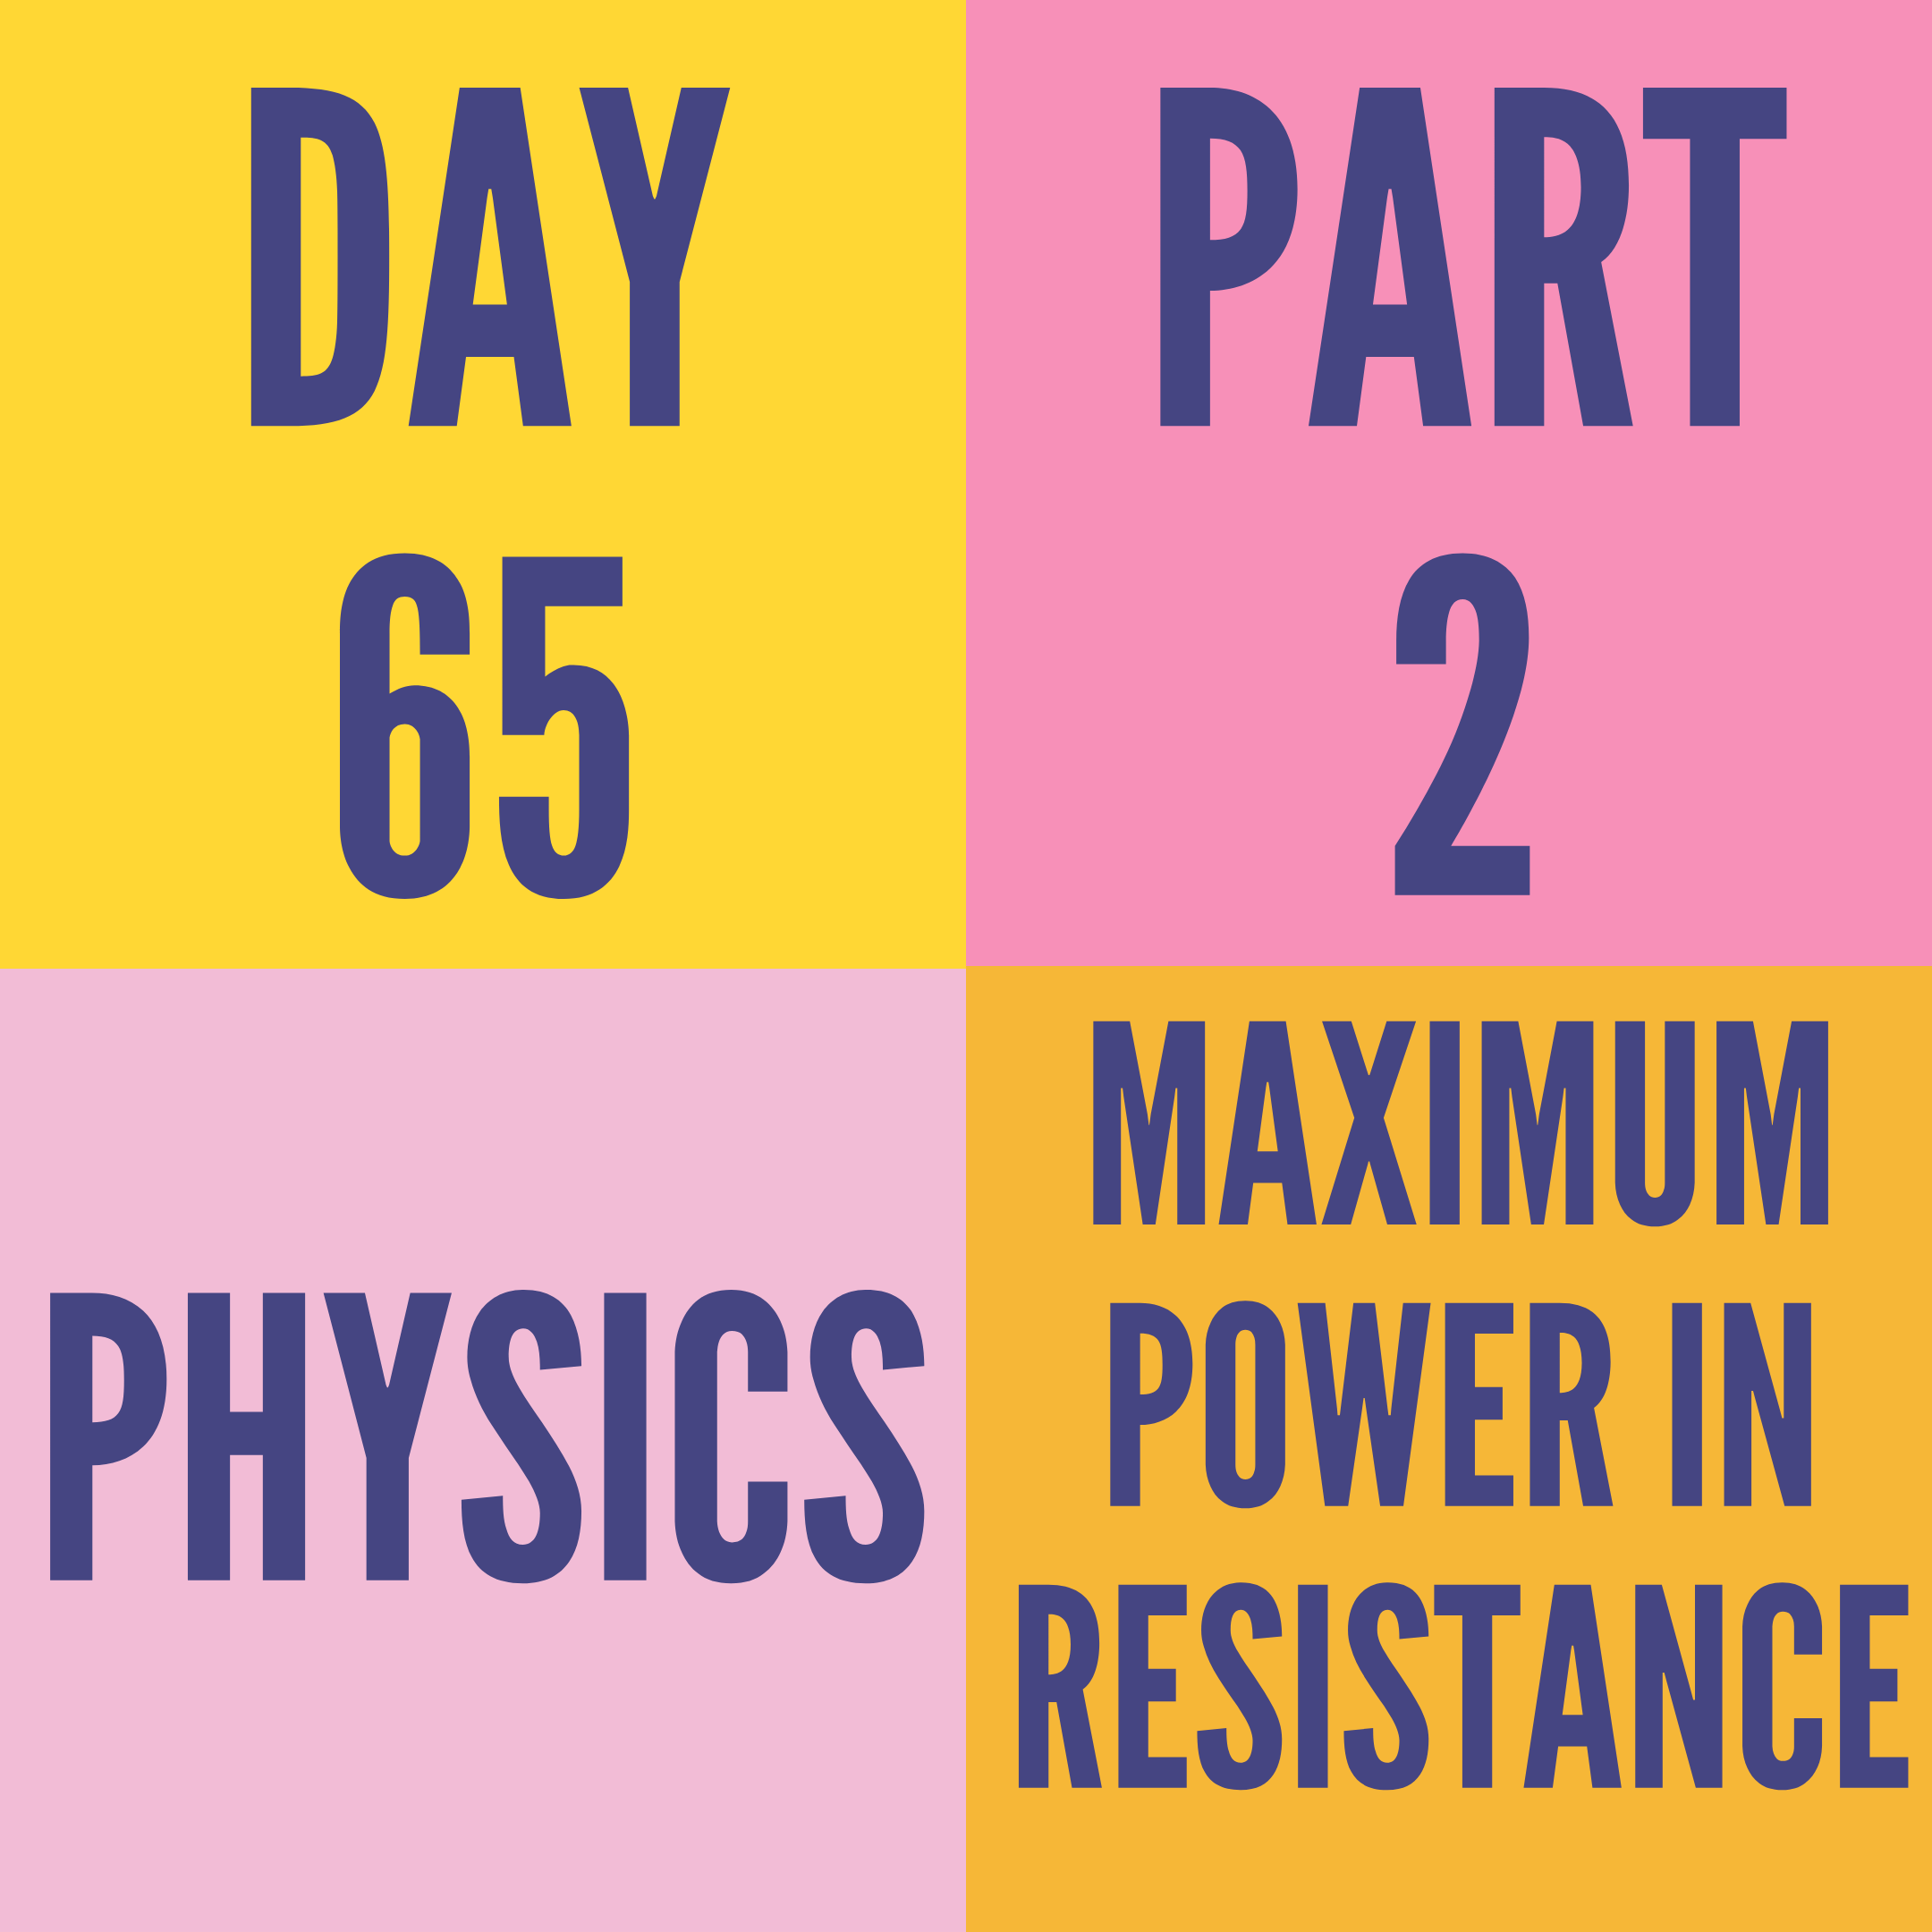 DAY-65 PART-2  MAXIMUM POWER IN RESISTANCE